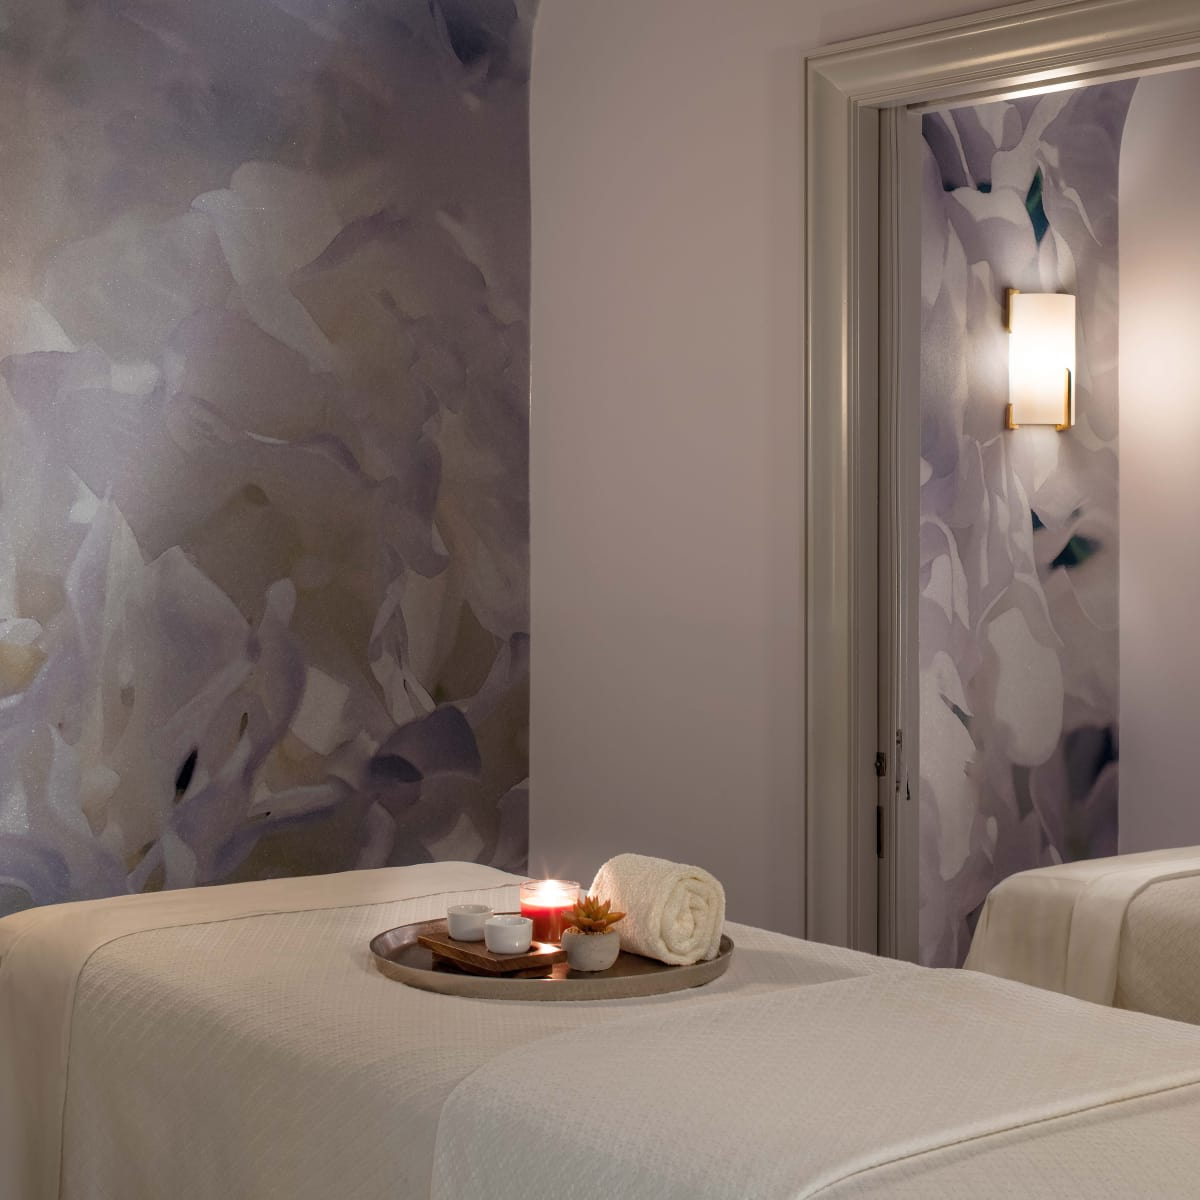 Couples treatment room, Spa at Hotel Crescent Court